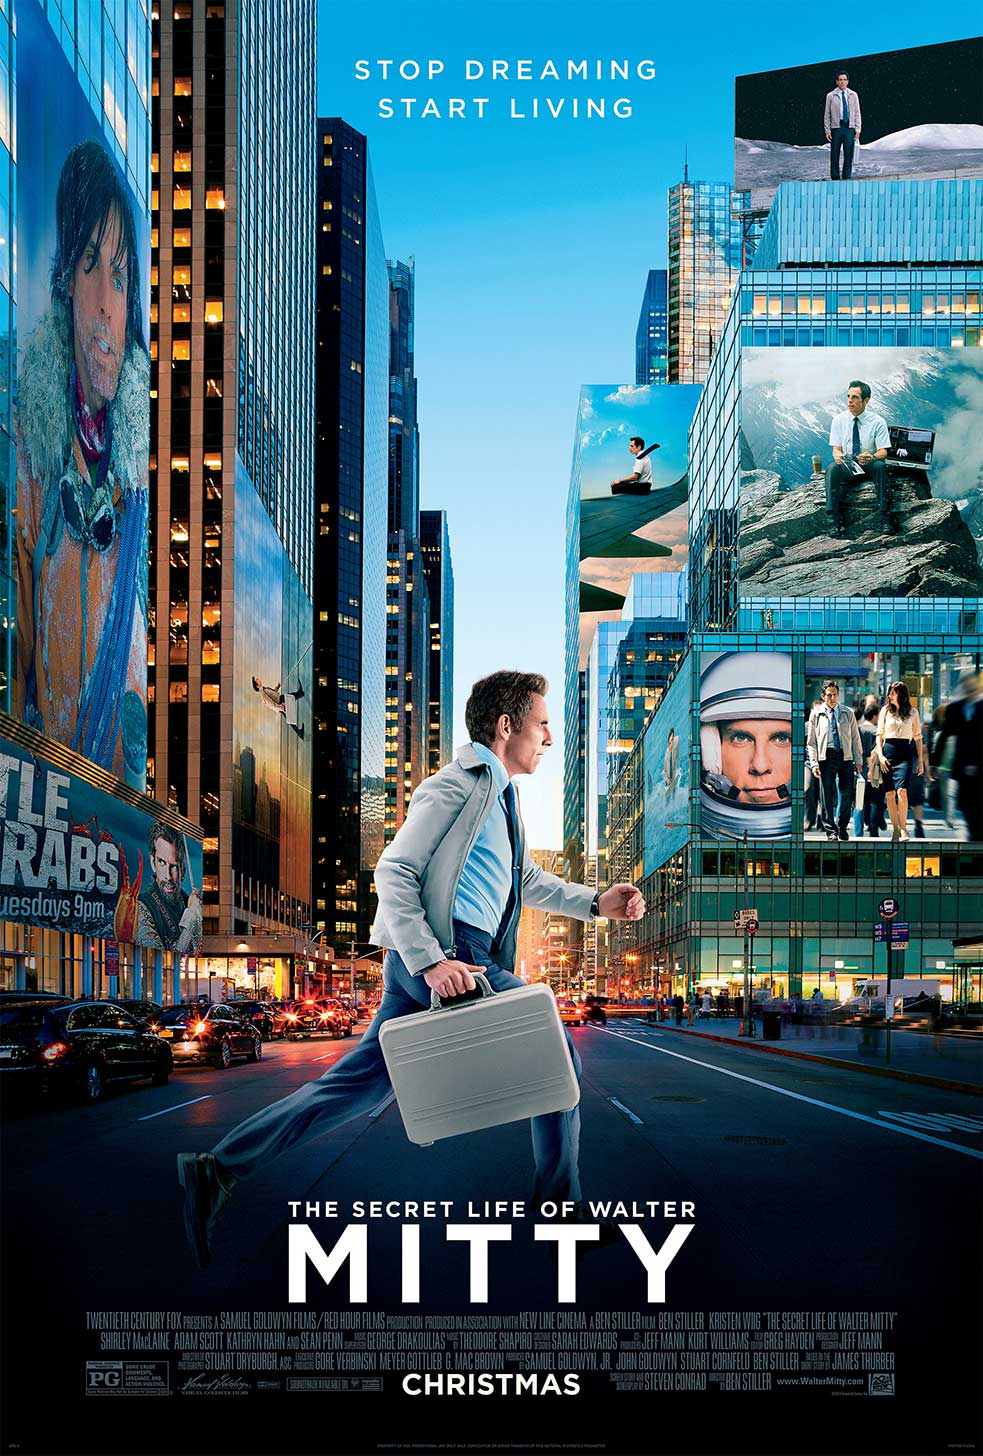 © The Secret Life of Walter Mitty